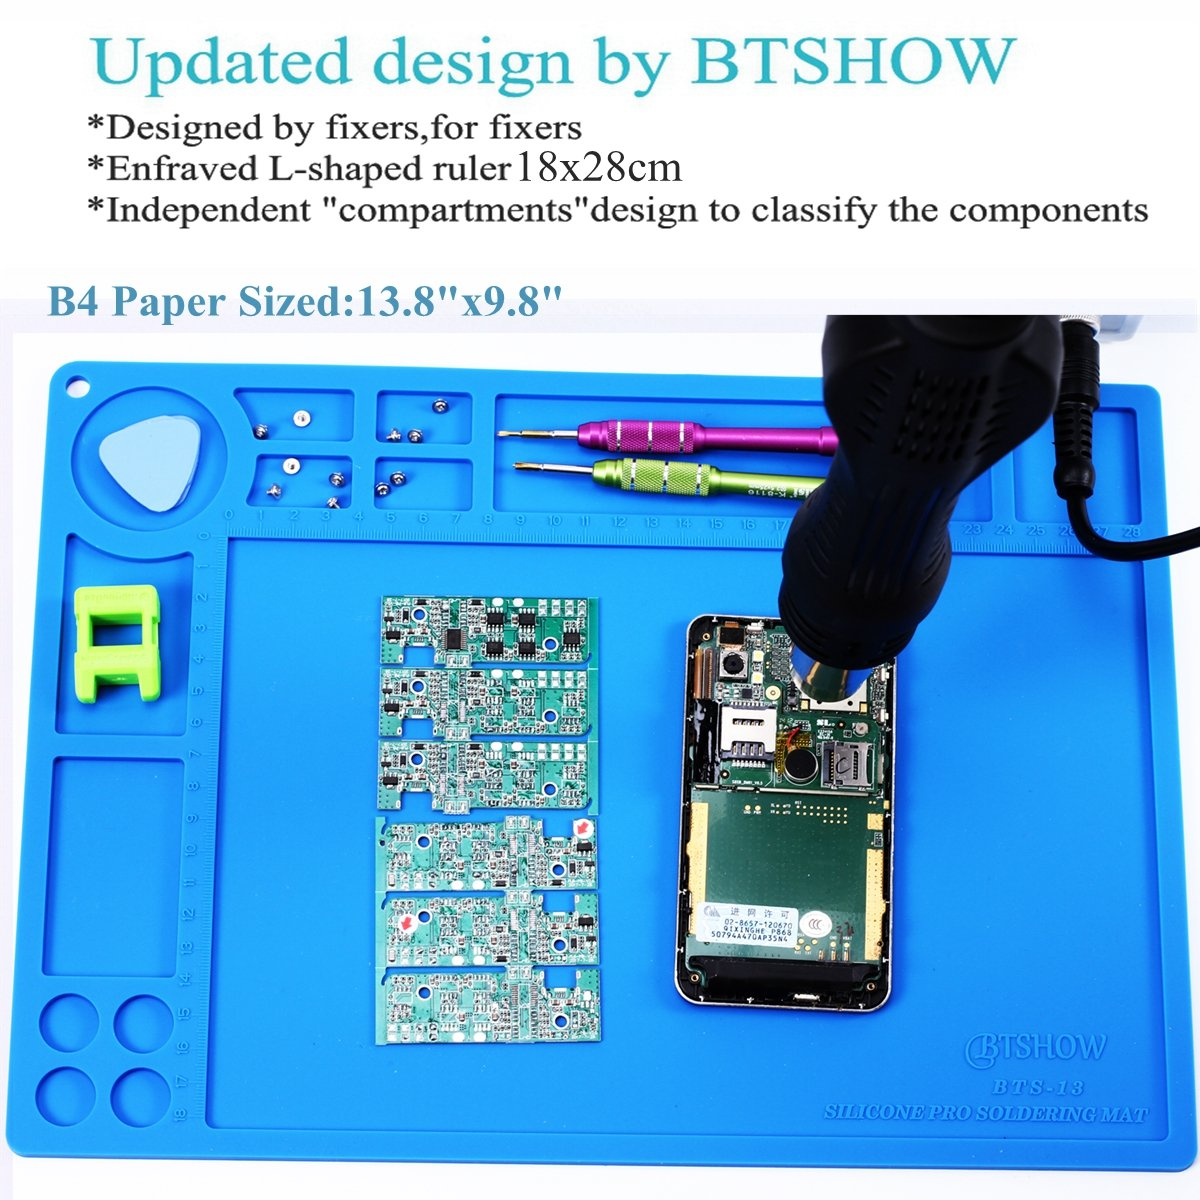 Btshow Soldering Mat Silicone Heat Resistant 954f Doityourself Diy Double Sided Pcb Circuit Board Etching Do It Materials Electronics For Gun Iron Station Cellphone Repair